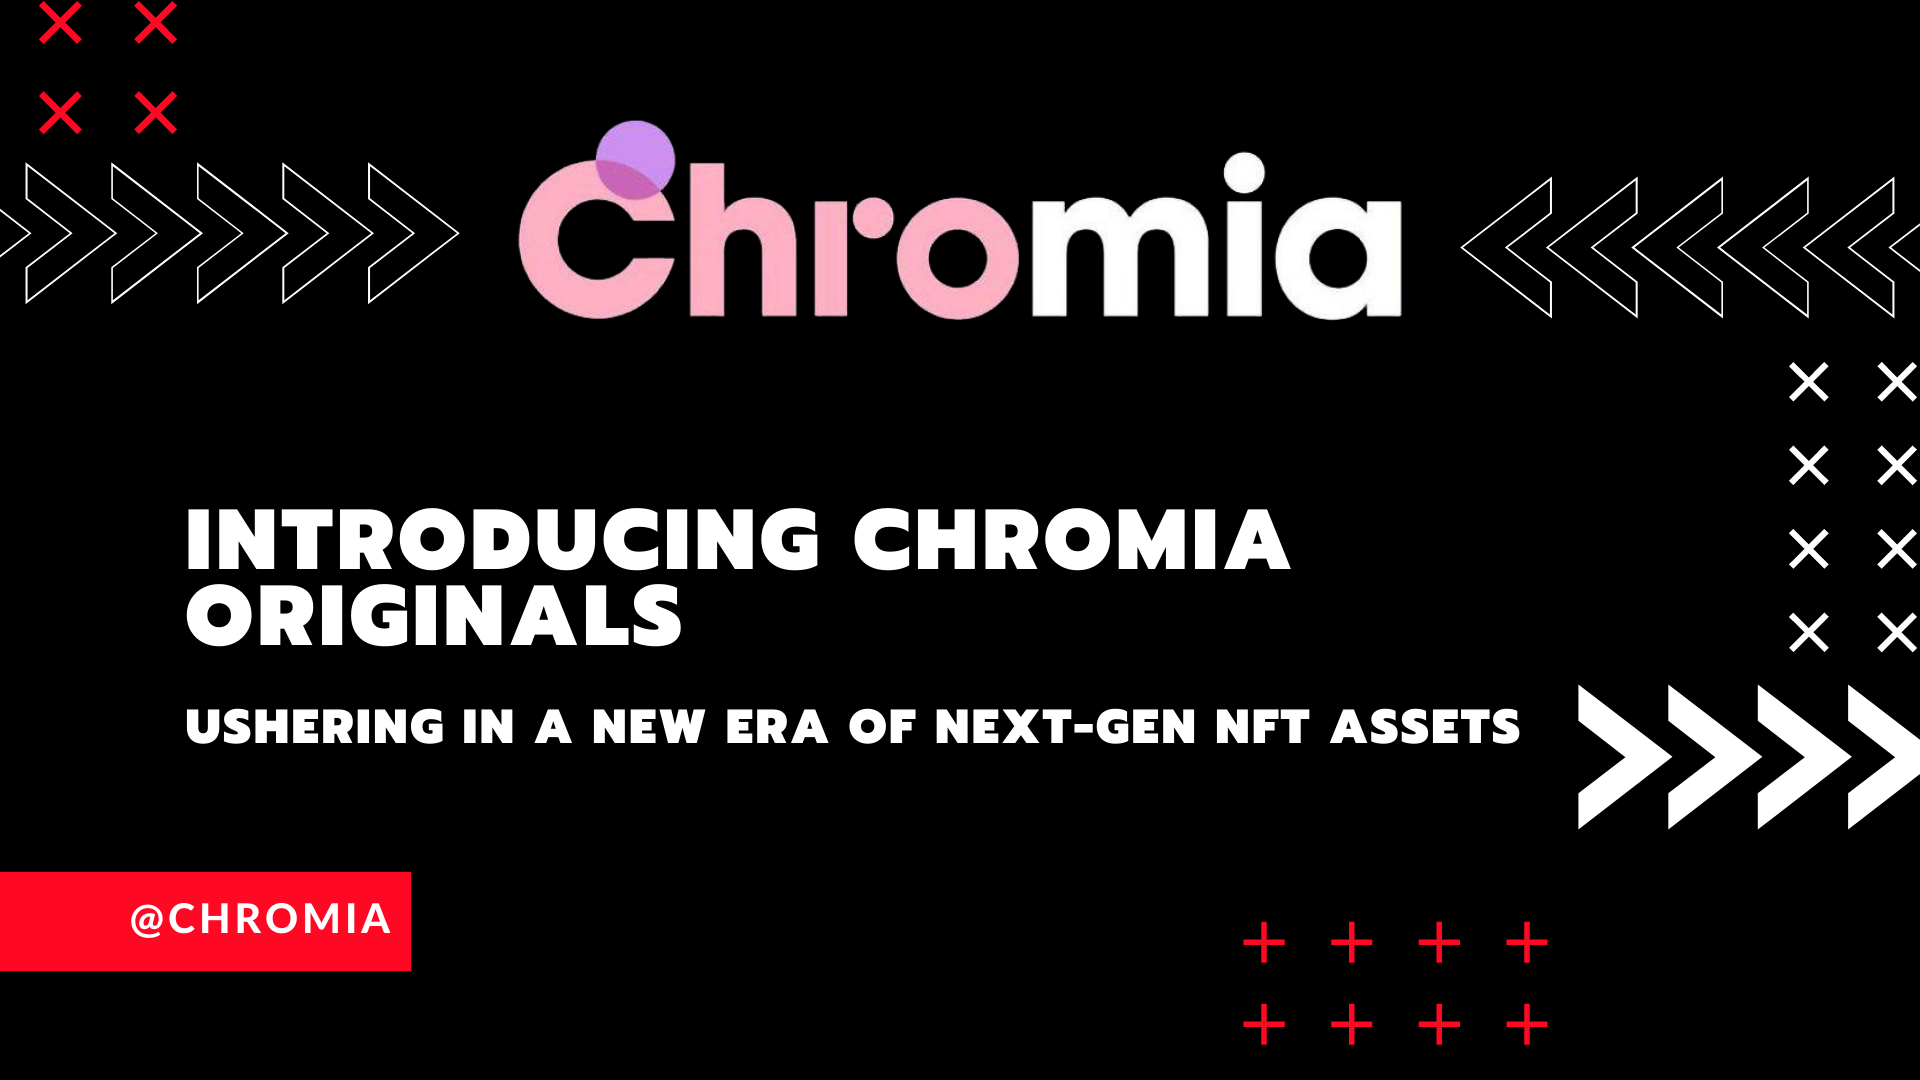 Chromia Originals: A Next-Generation NFT Standard